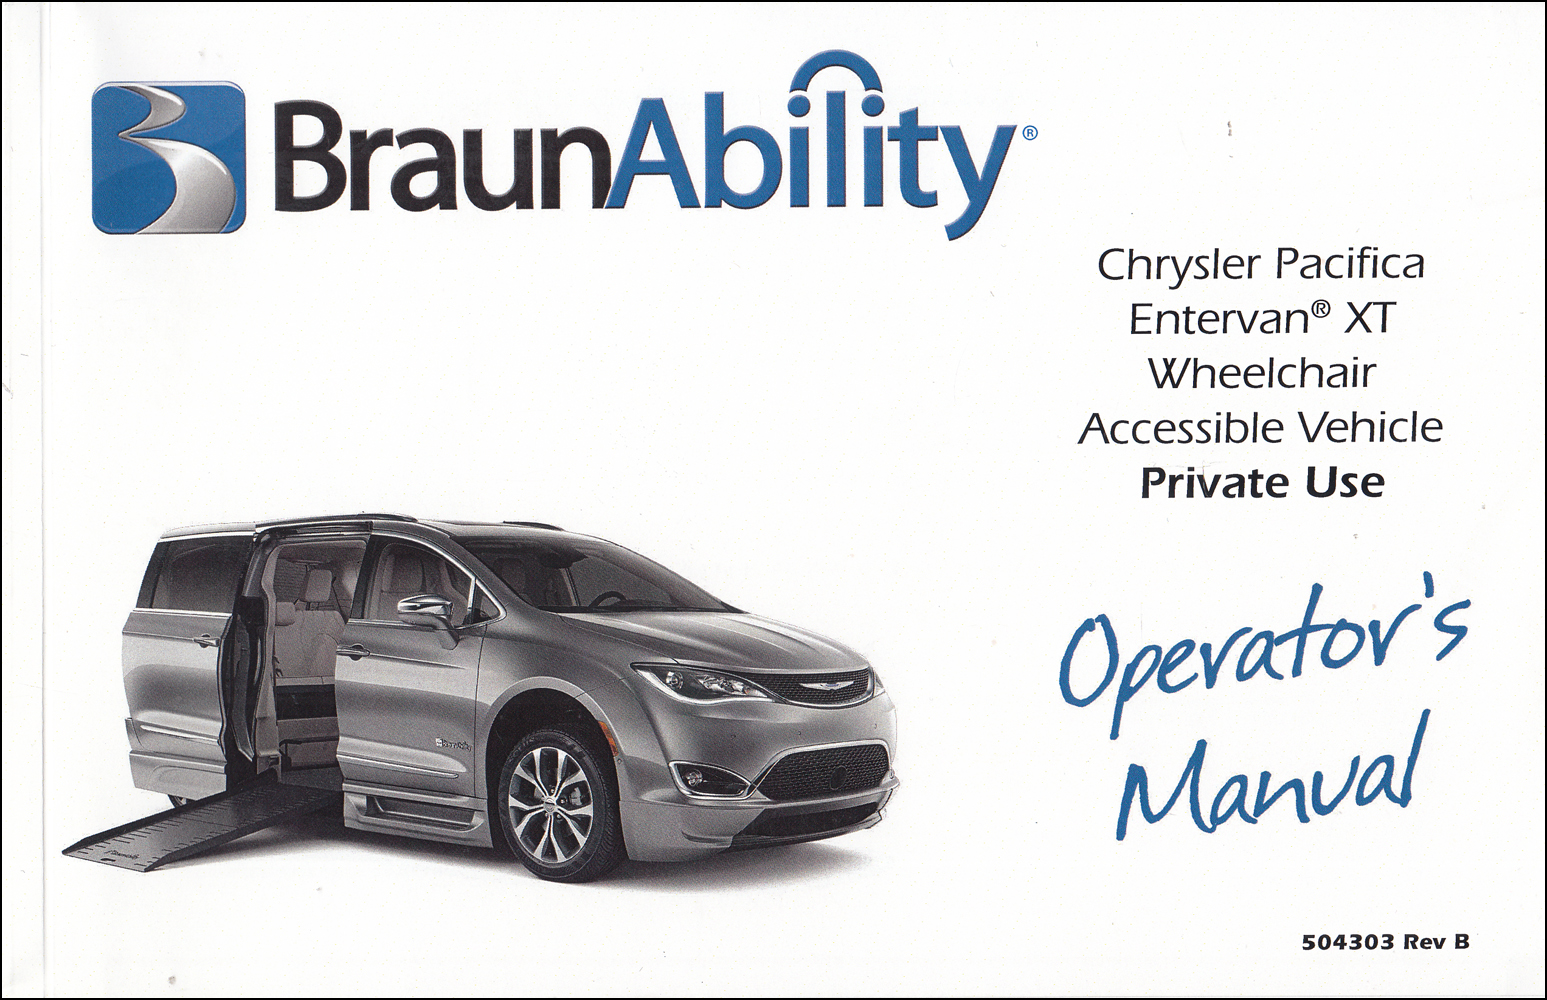 New 2018 Chrysler Pacifica Owners Manual Set Guide Includes Case Wiring Diagram